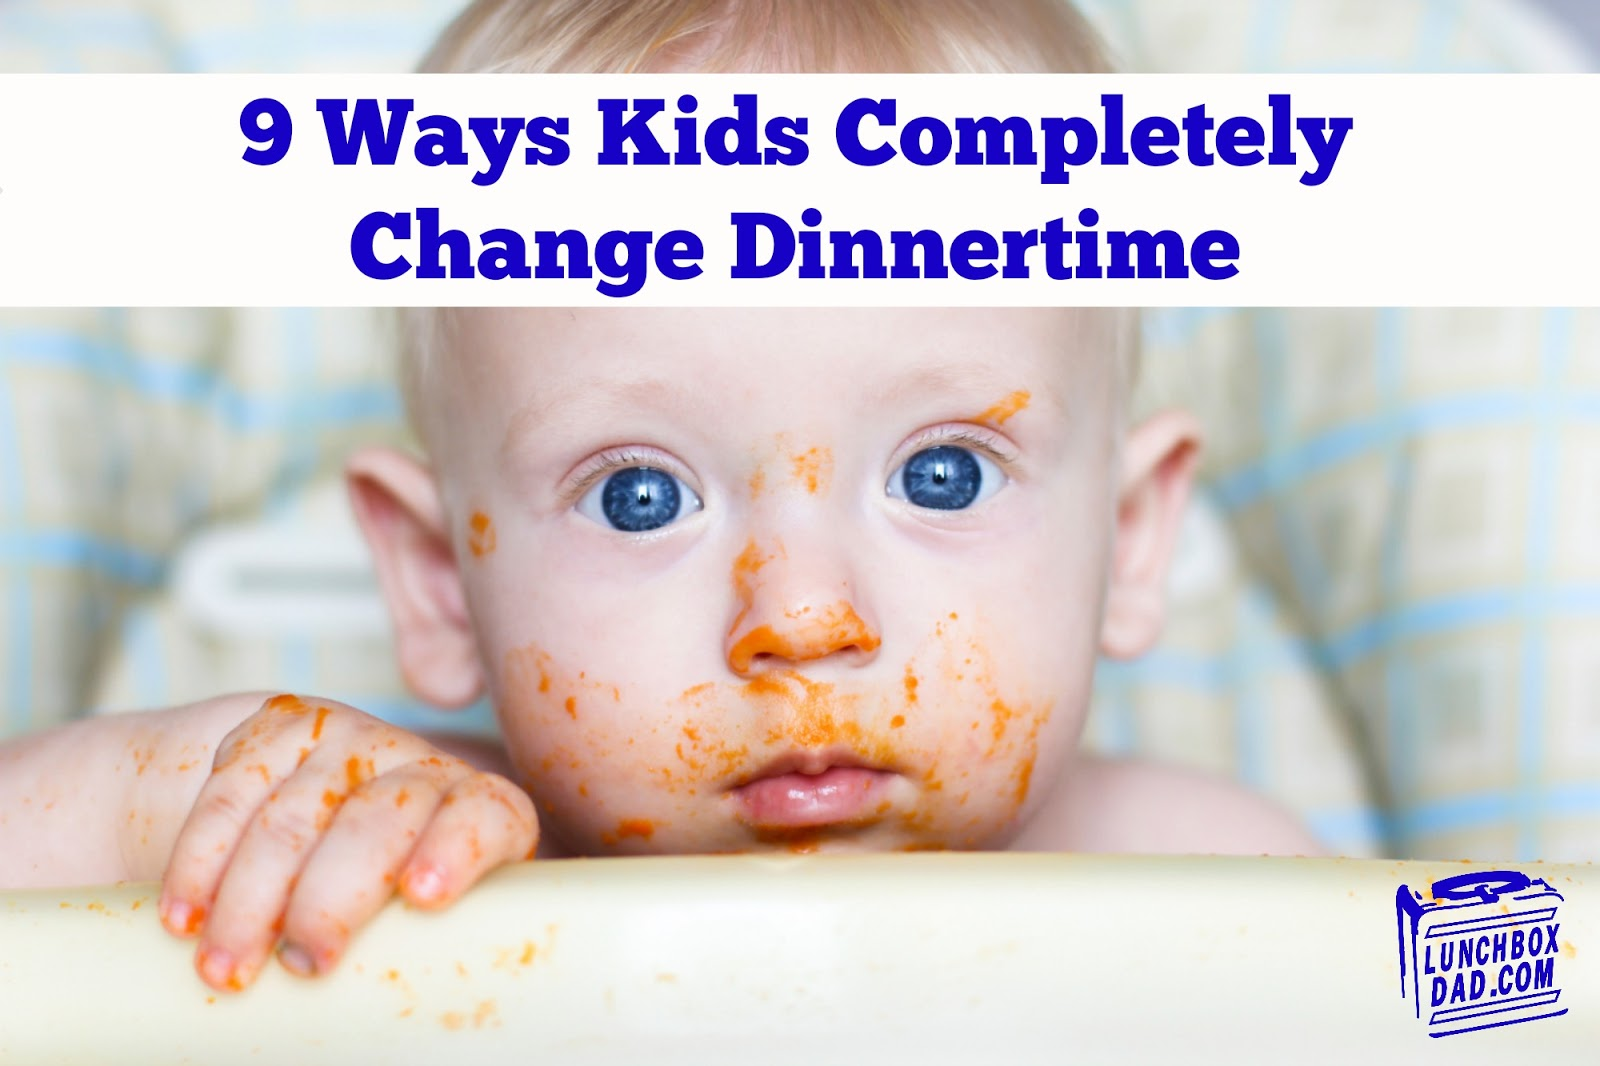 9 Ways Kids Completely Change Dinnertime